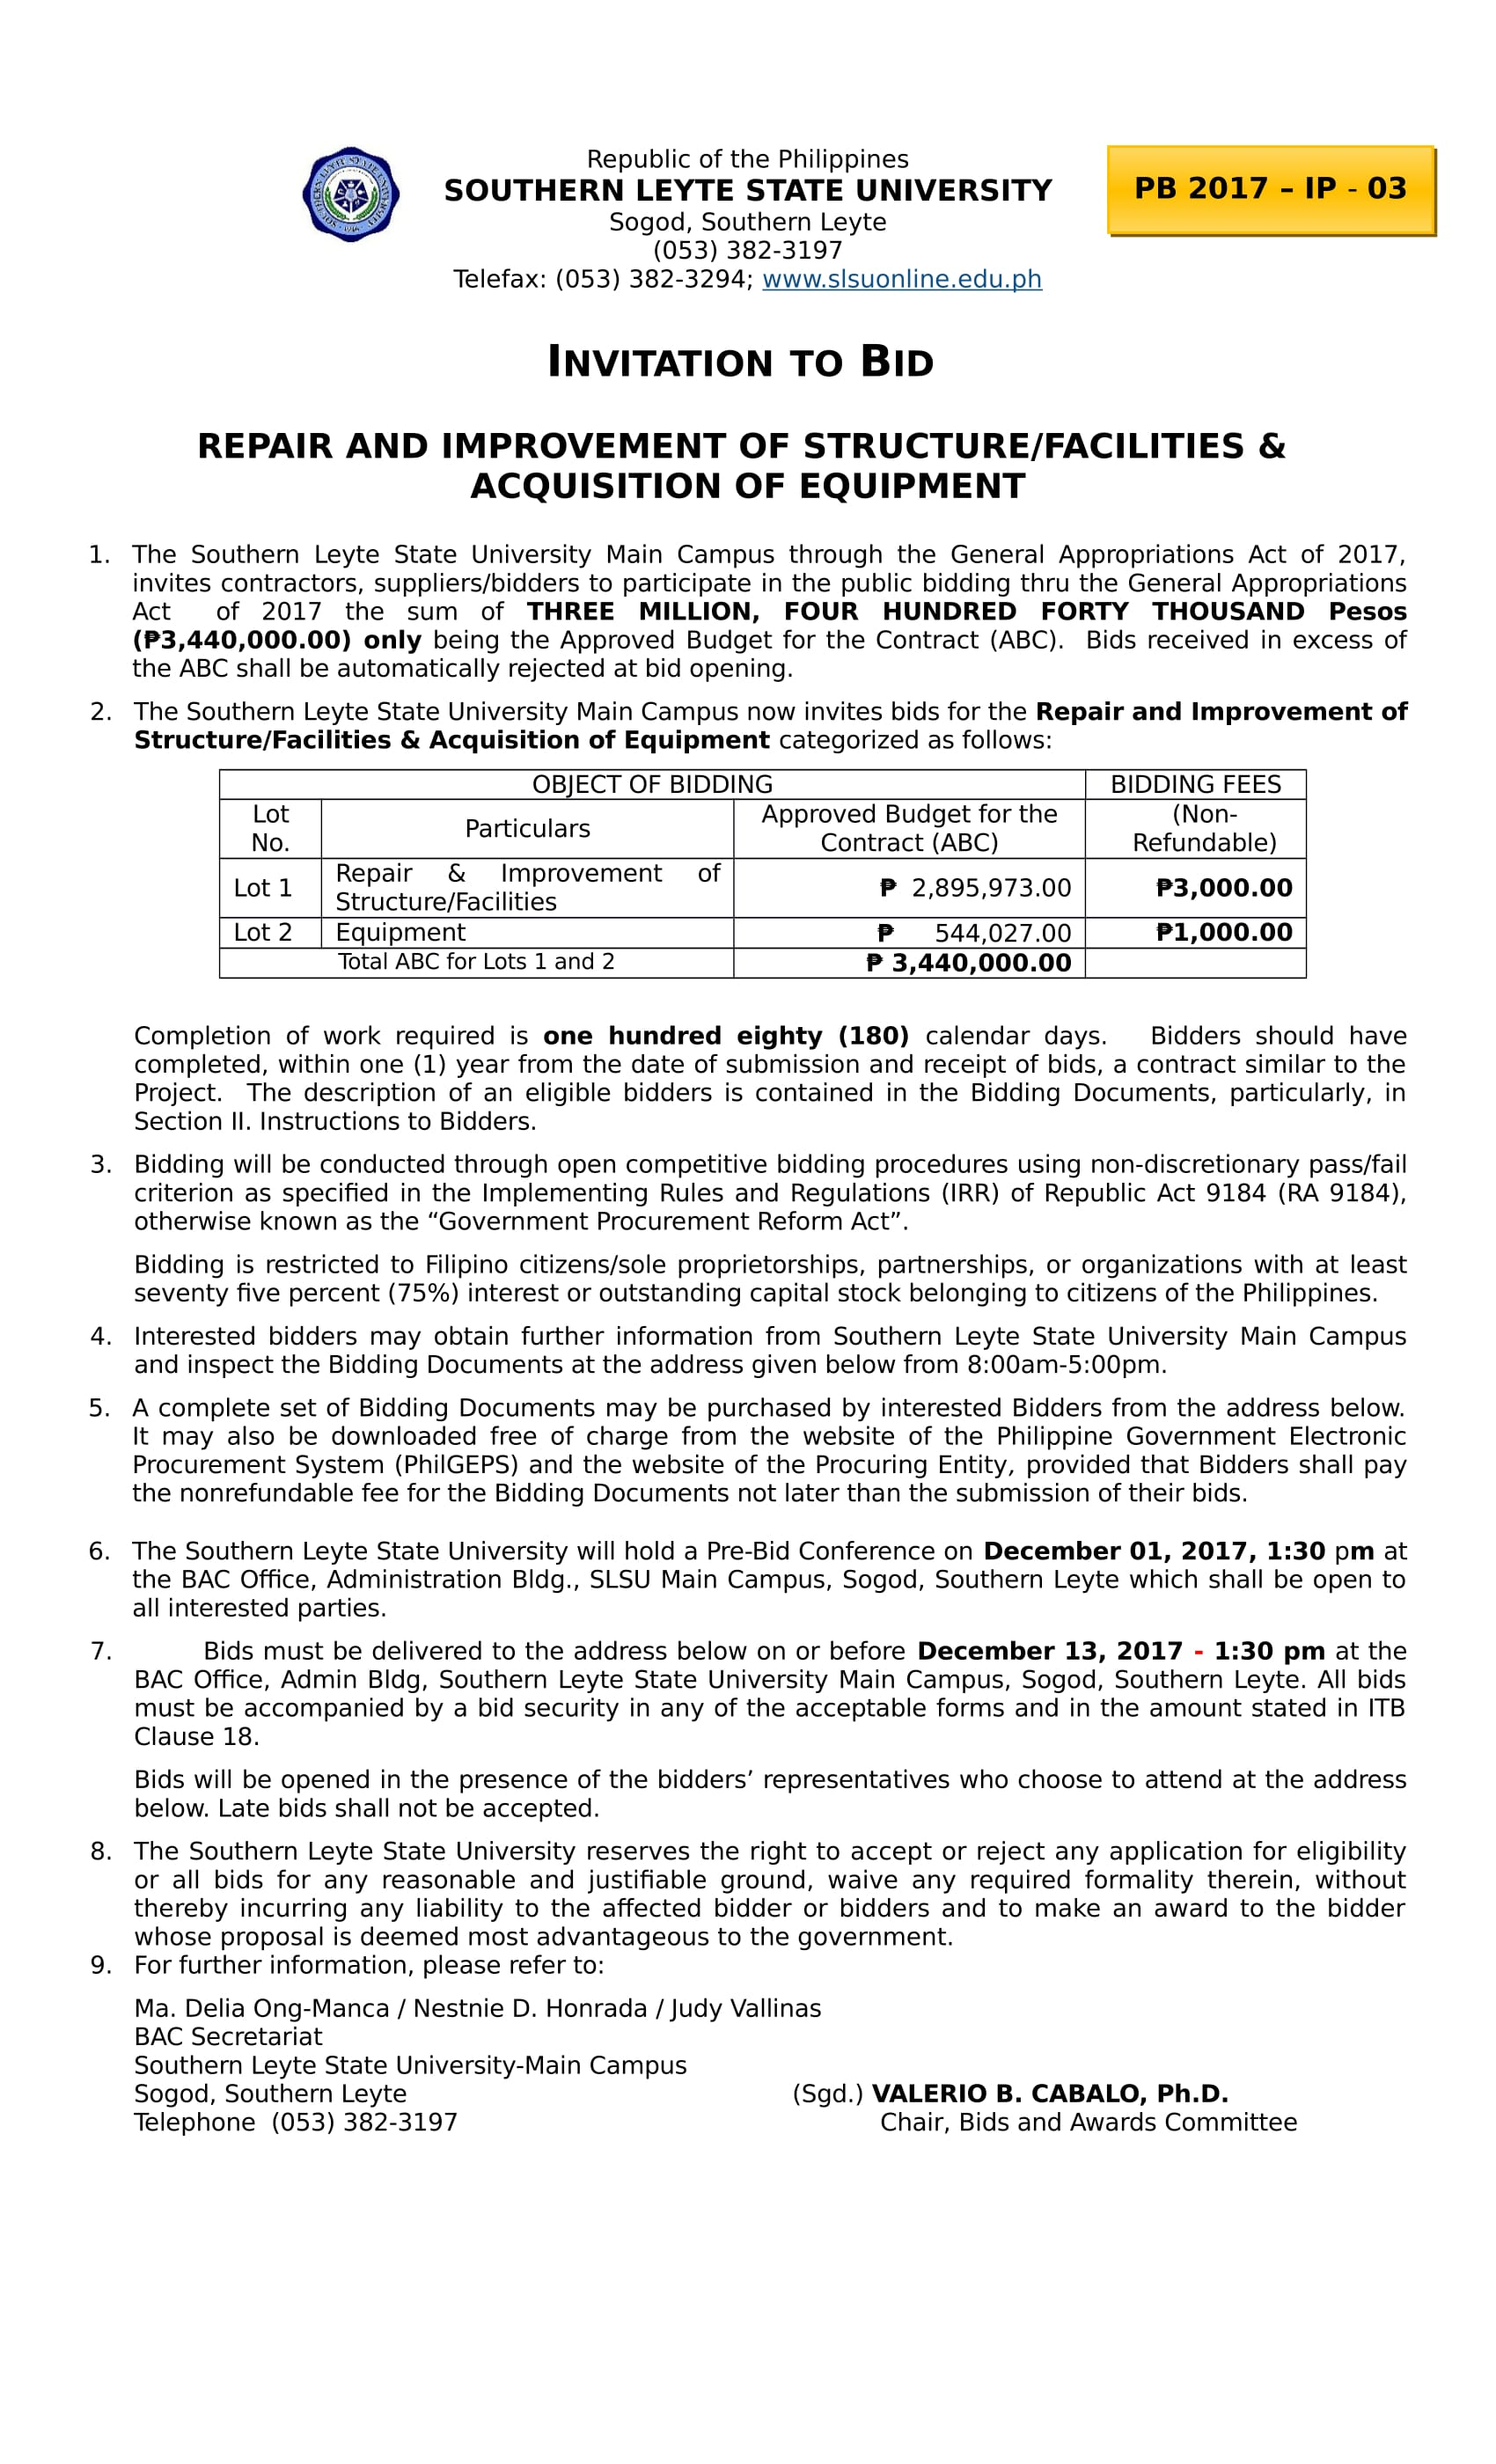 Invitation to bid for the repair and improvement of structure invitation to bid for the repair and improvement of structurefacilities acquisition of equipment stopboris Image collections